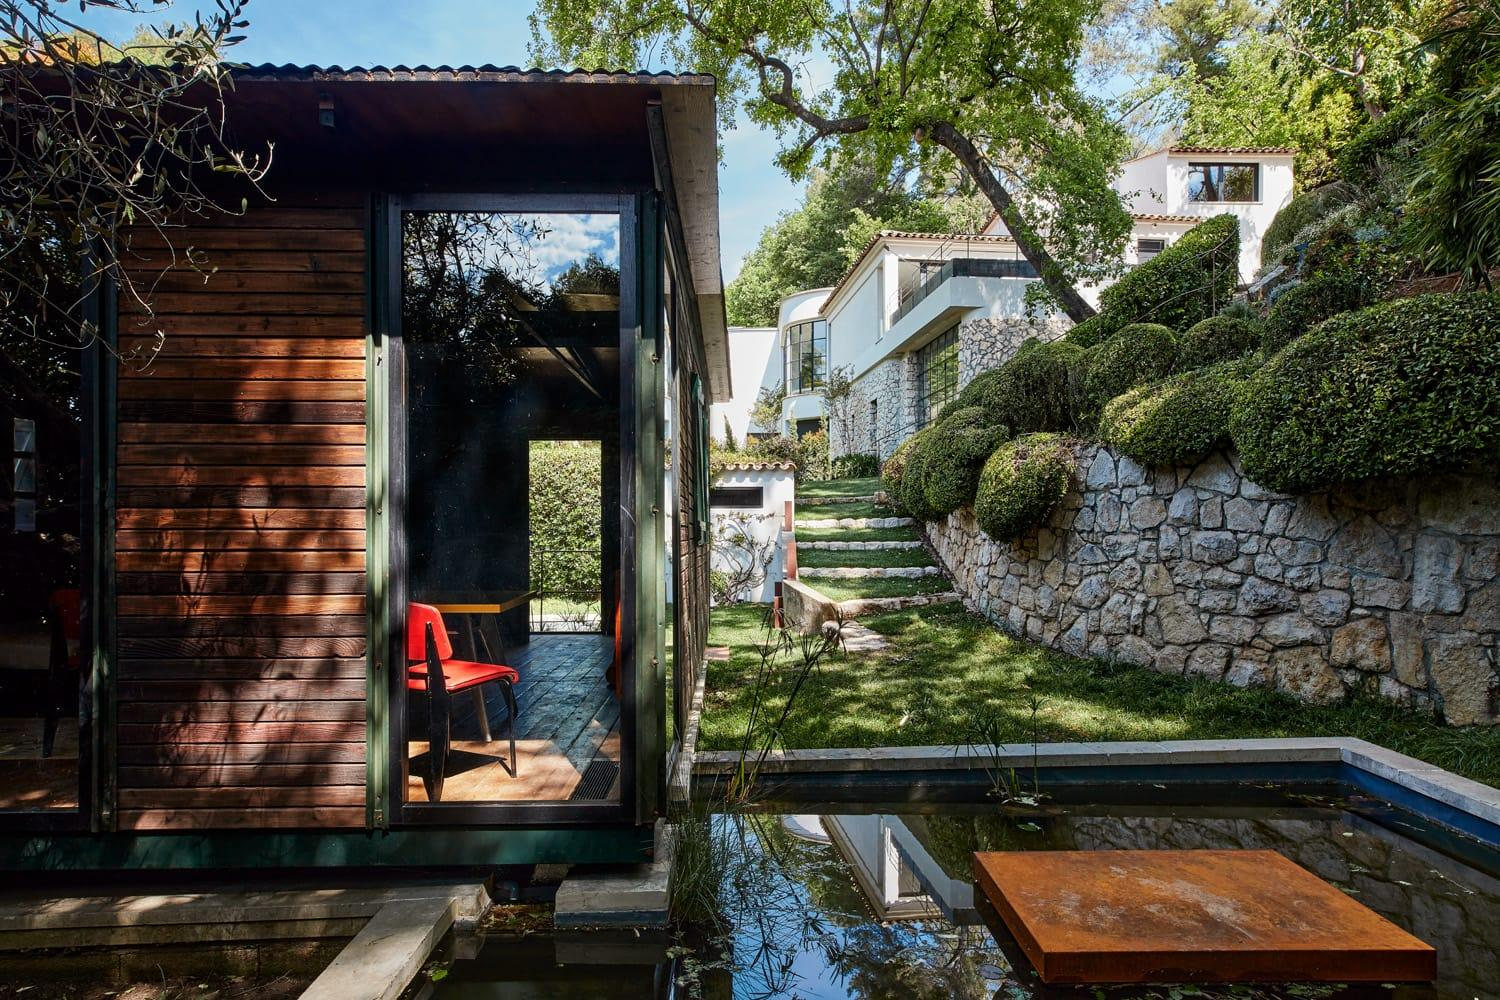 Visitors can find – and rent – one of Jean Prouvé's sought-after demountable homes